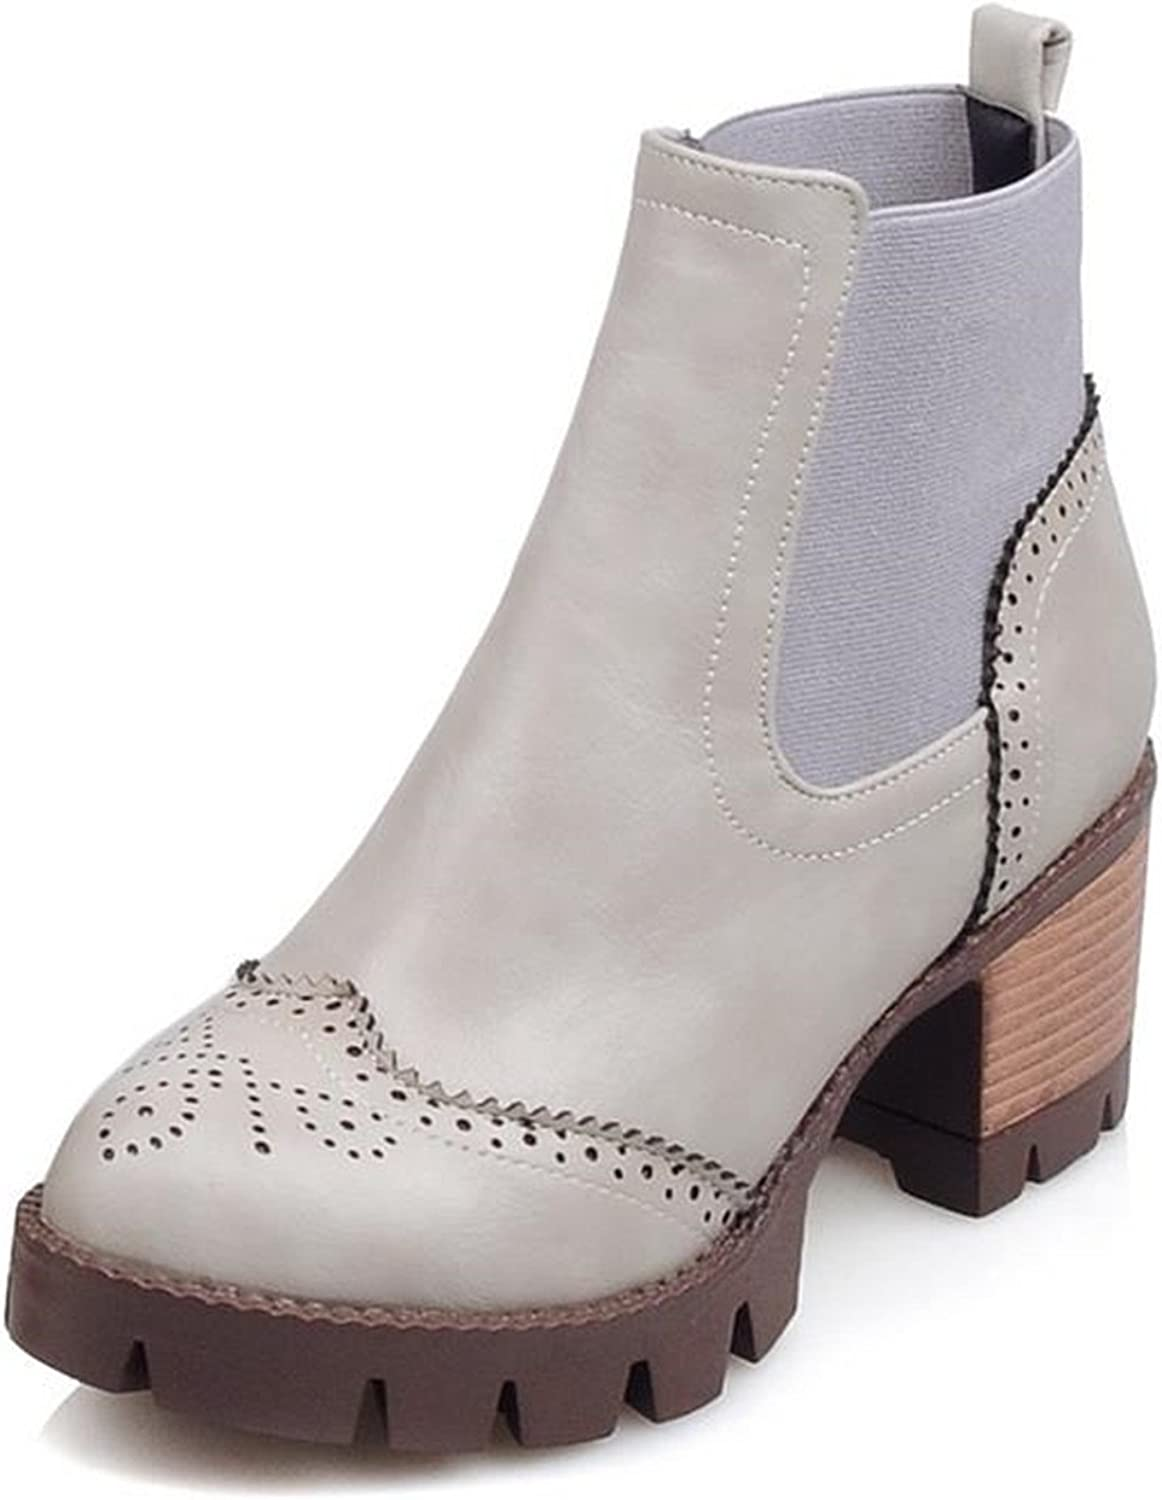 Jeff Tribble Ankle Boots with Cut Outs Square Heels Round Toe Platform Pu Soft Leather Women Fashion Boots